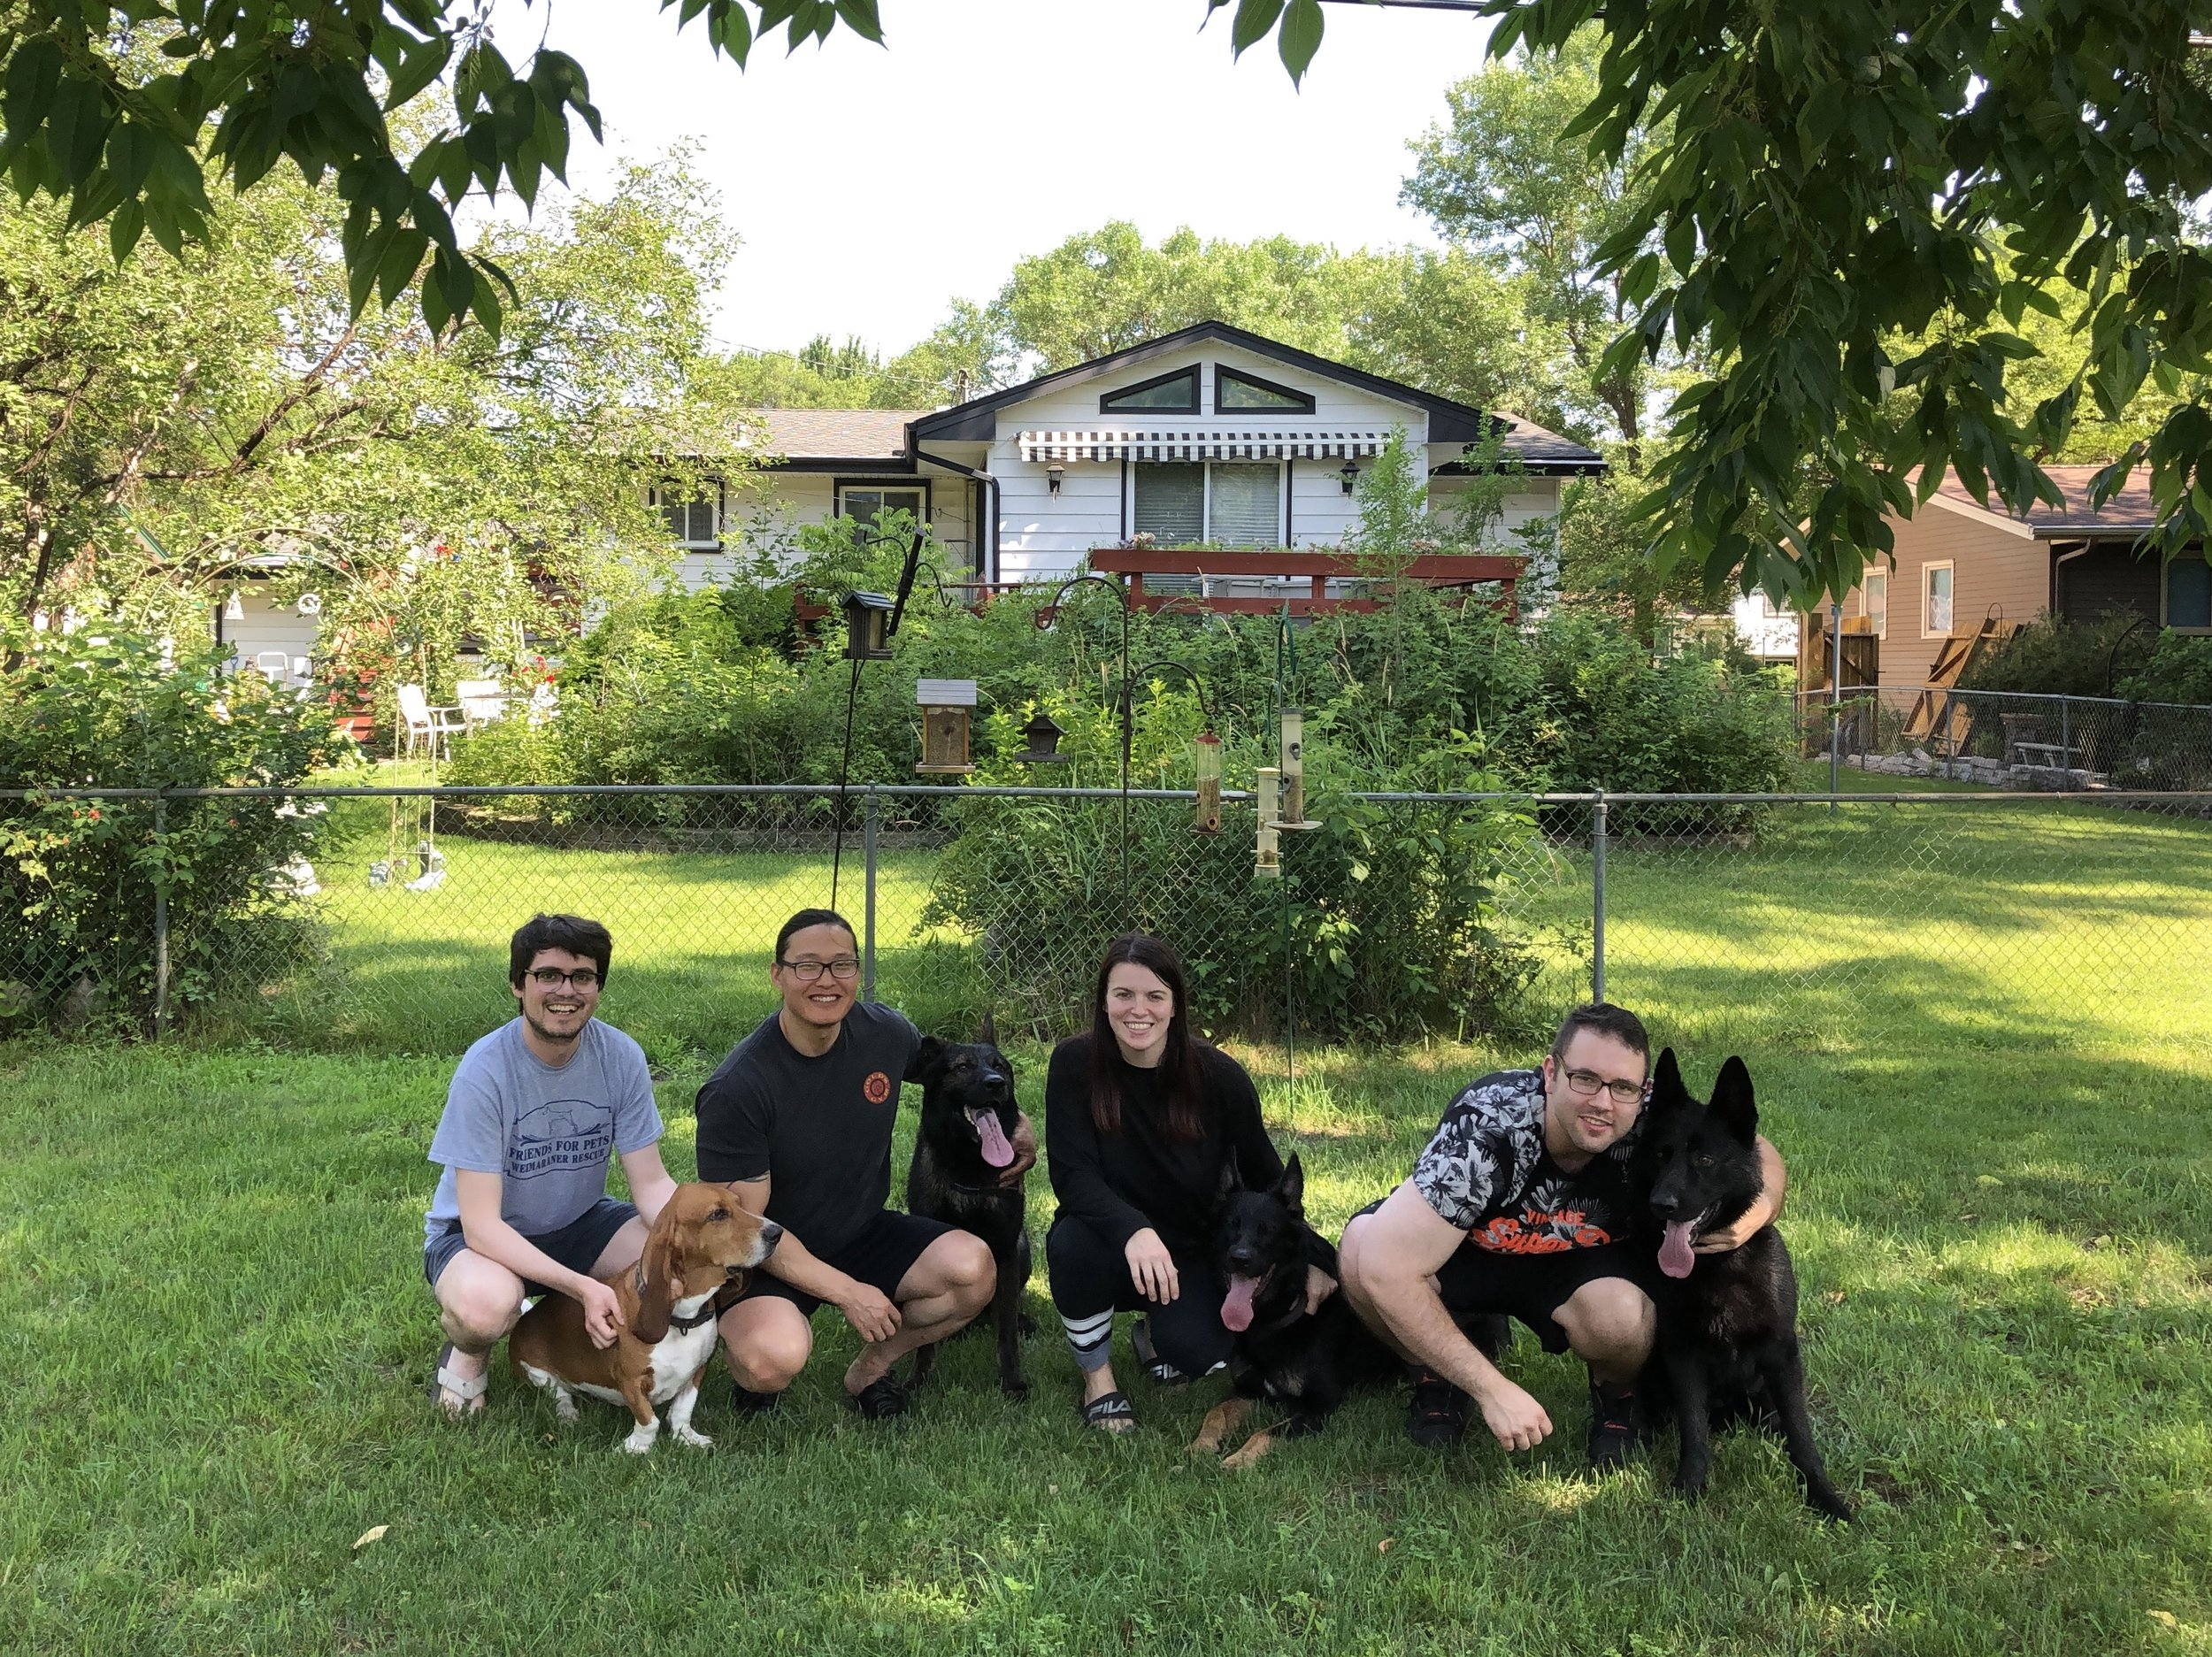 L to R: Me, Koopa the basset hound, my brother Jim, Vulcan the german shepherd, my sister-in-law Mia, Azlo the german shepherd, Mia's brother Eddie, Zeus the german shepherd. Koopa, Vulcan, and Azlo are Jim and Mia's dogs. Zeus is Eddie's dog and also Vulcan's littermate. This pic is technically from Day 11, but the group shot made more sense here.